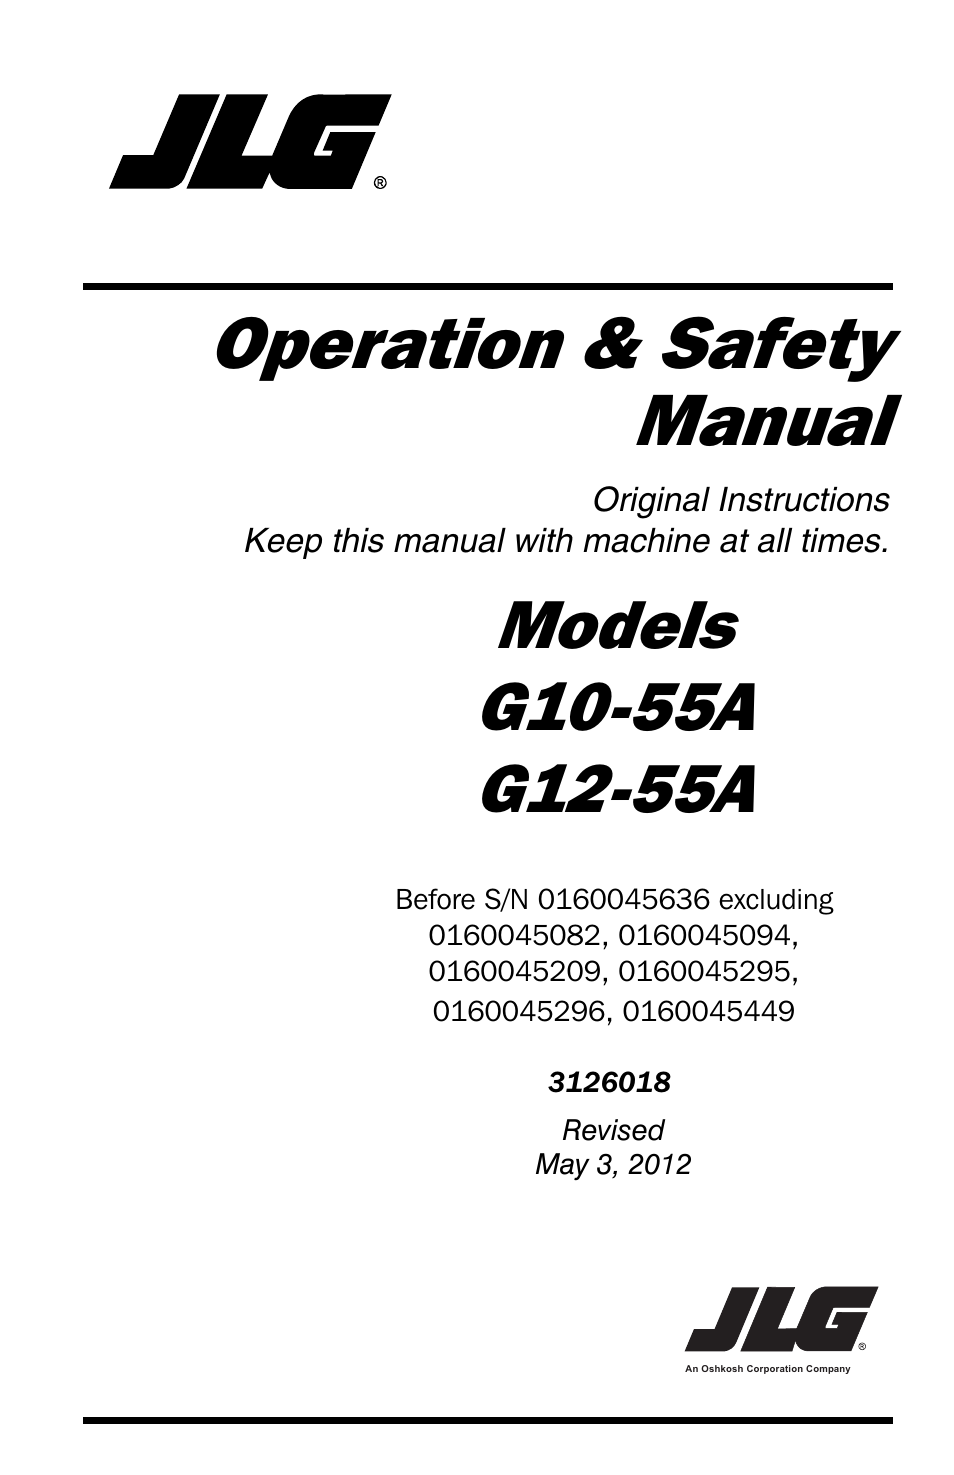 Jlg Wiring Schematics Schematic G12 55a Trusted Diagrams Operator Manual User 164 Pages Also For G10 Rh Manualsdir Com